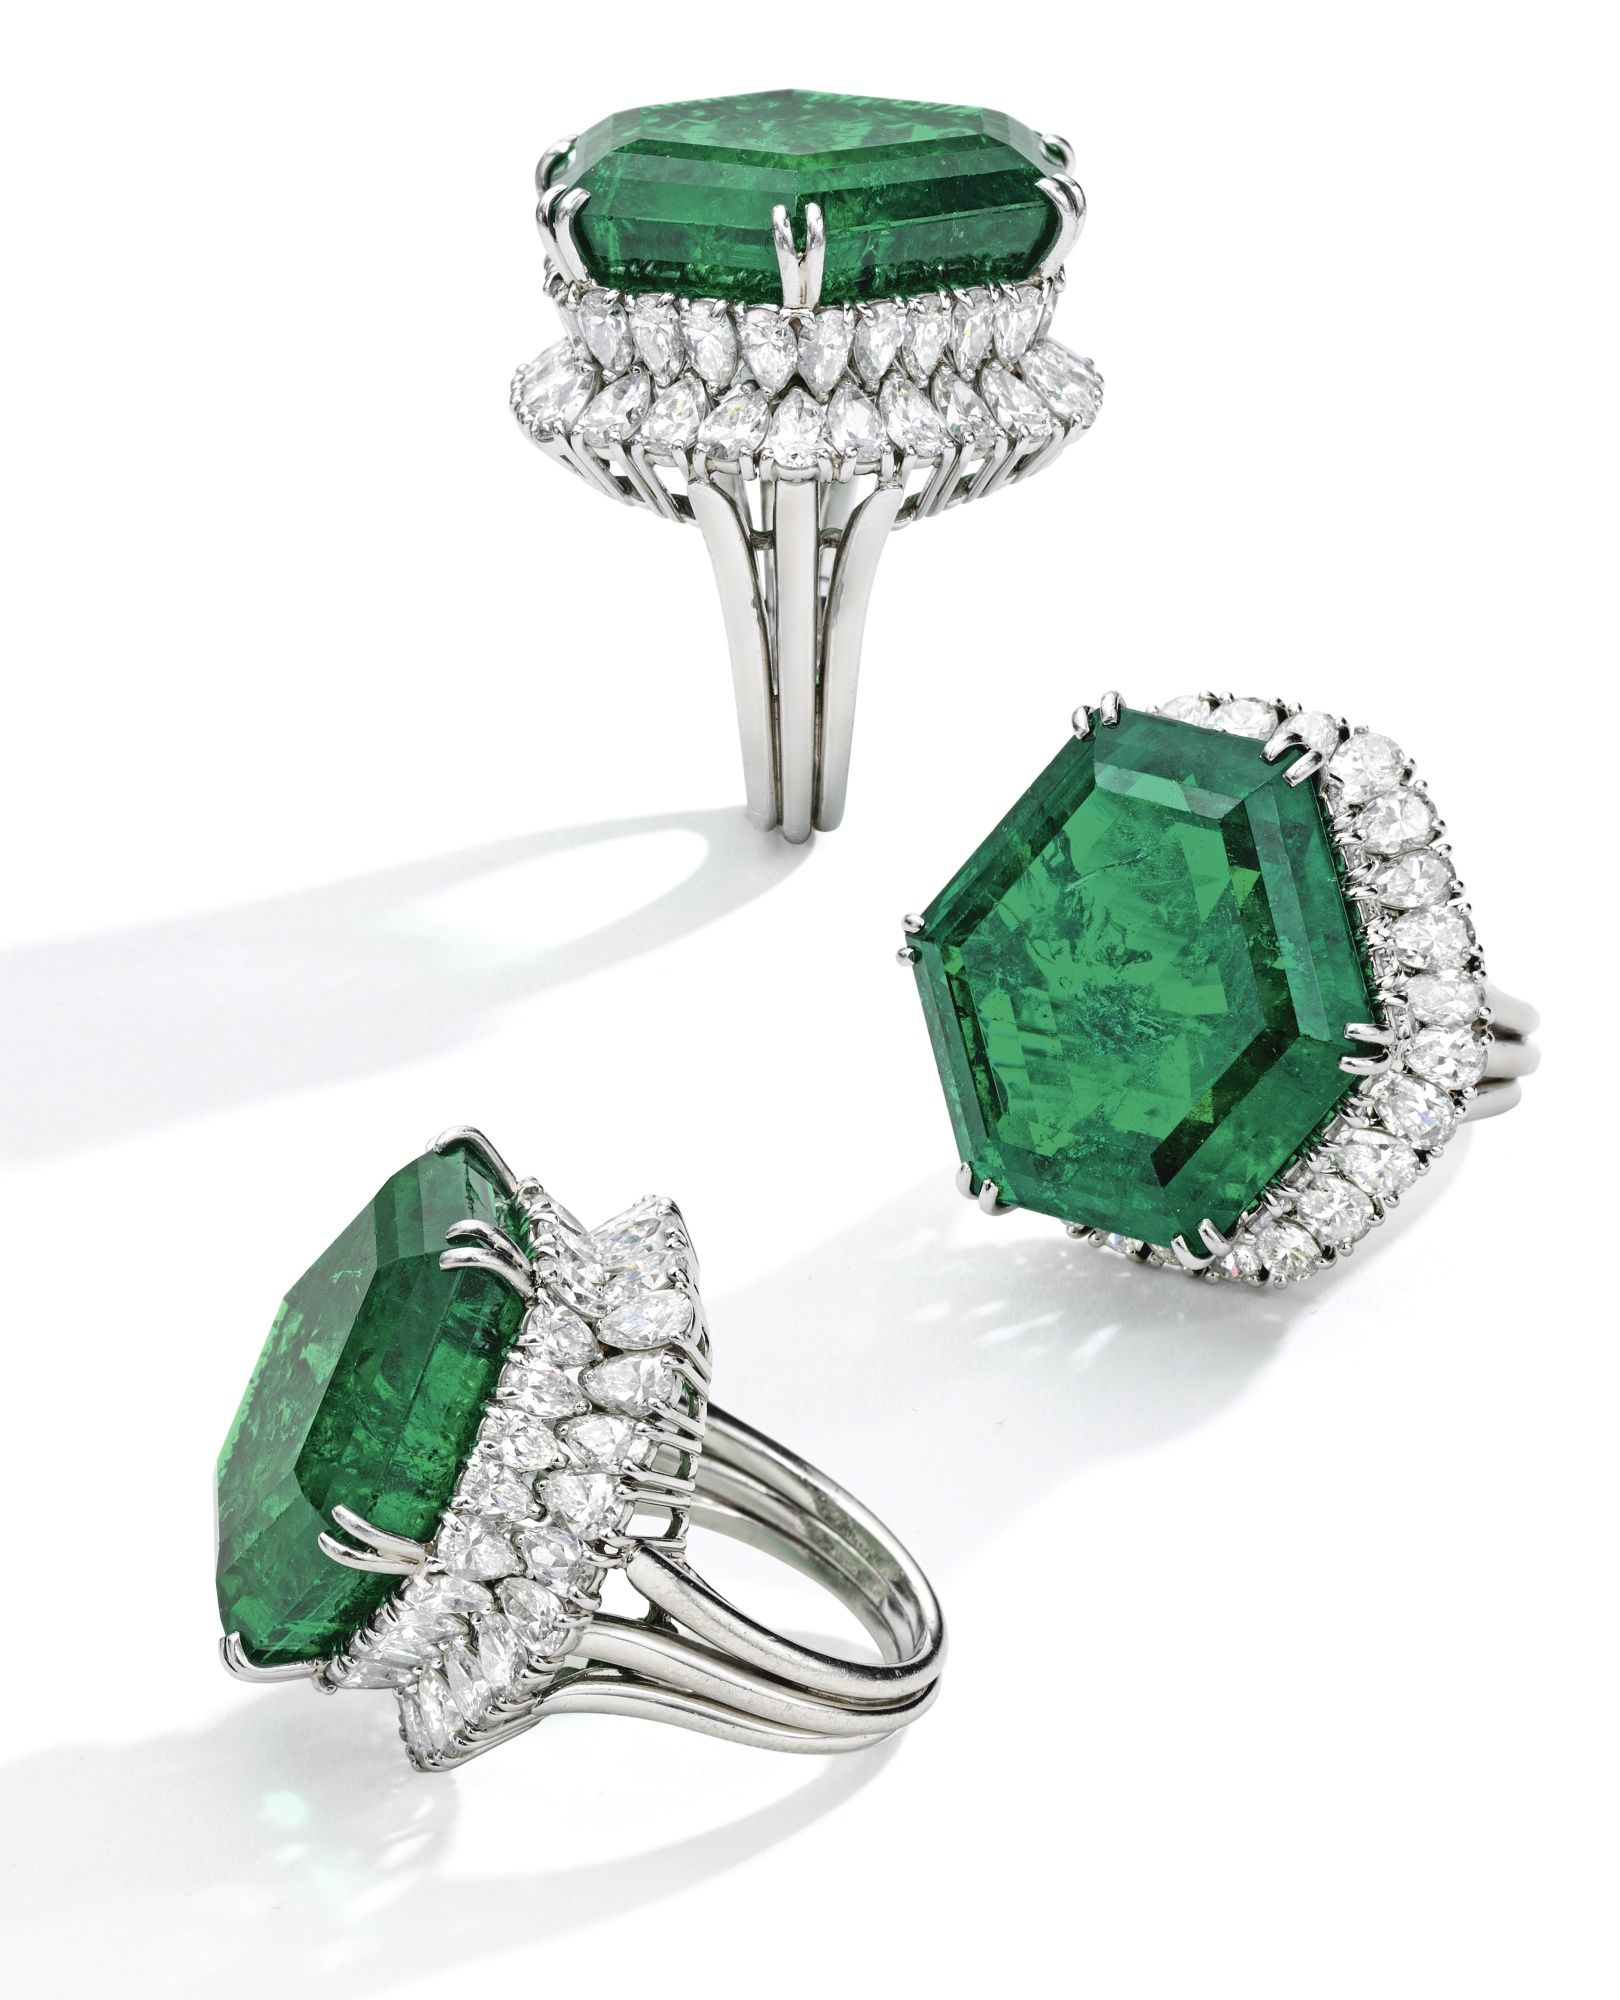 The magnificent and legendary stotesbury emerald platinum emerald